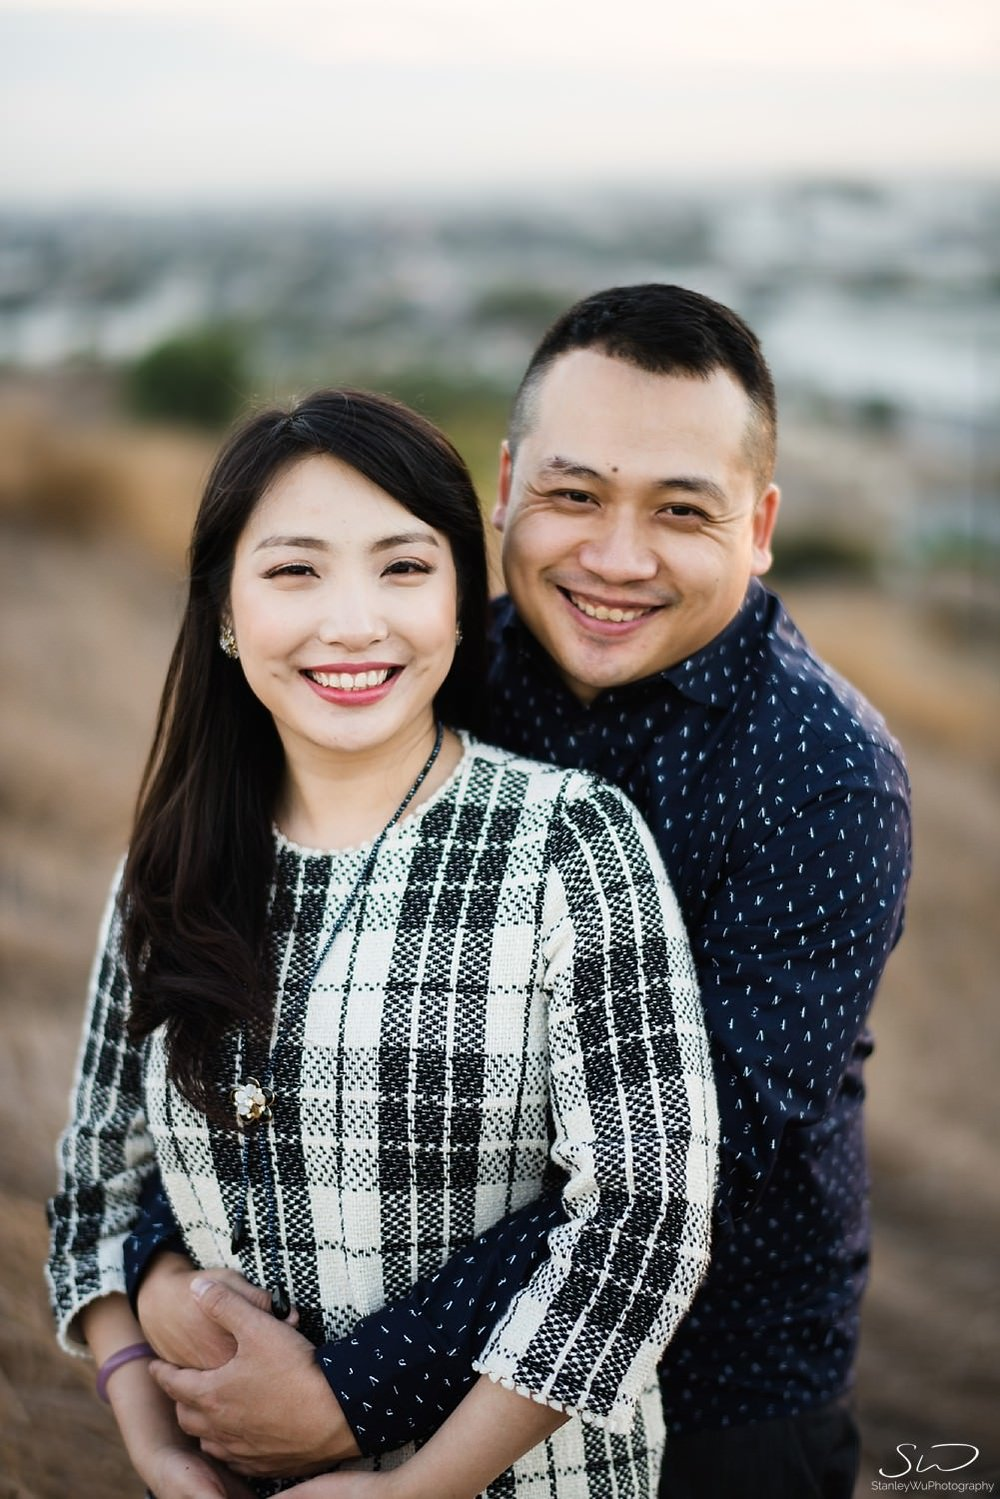 Couple holding each other posing in front of camera  by Stanley Wu, timeless and artistic portrait and wedding photographer based in Los Angeles.